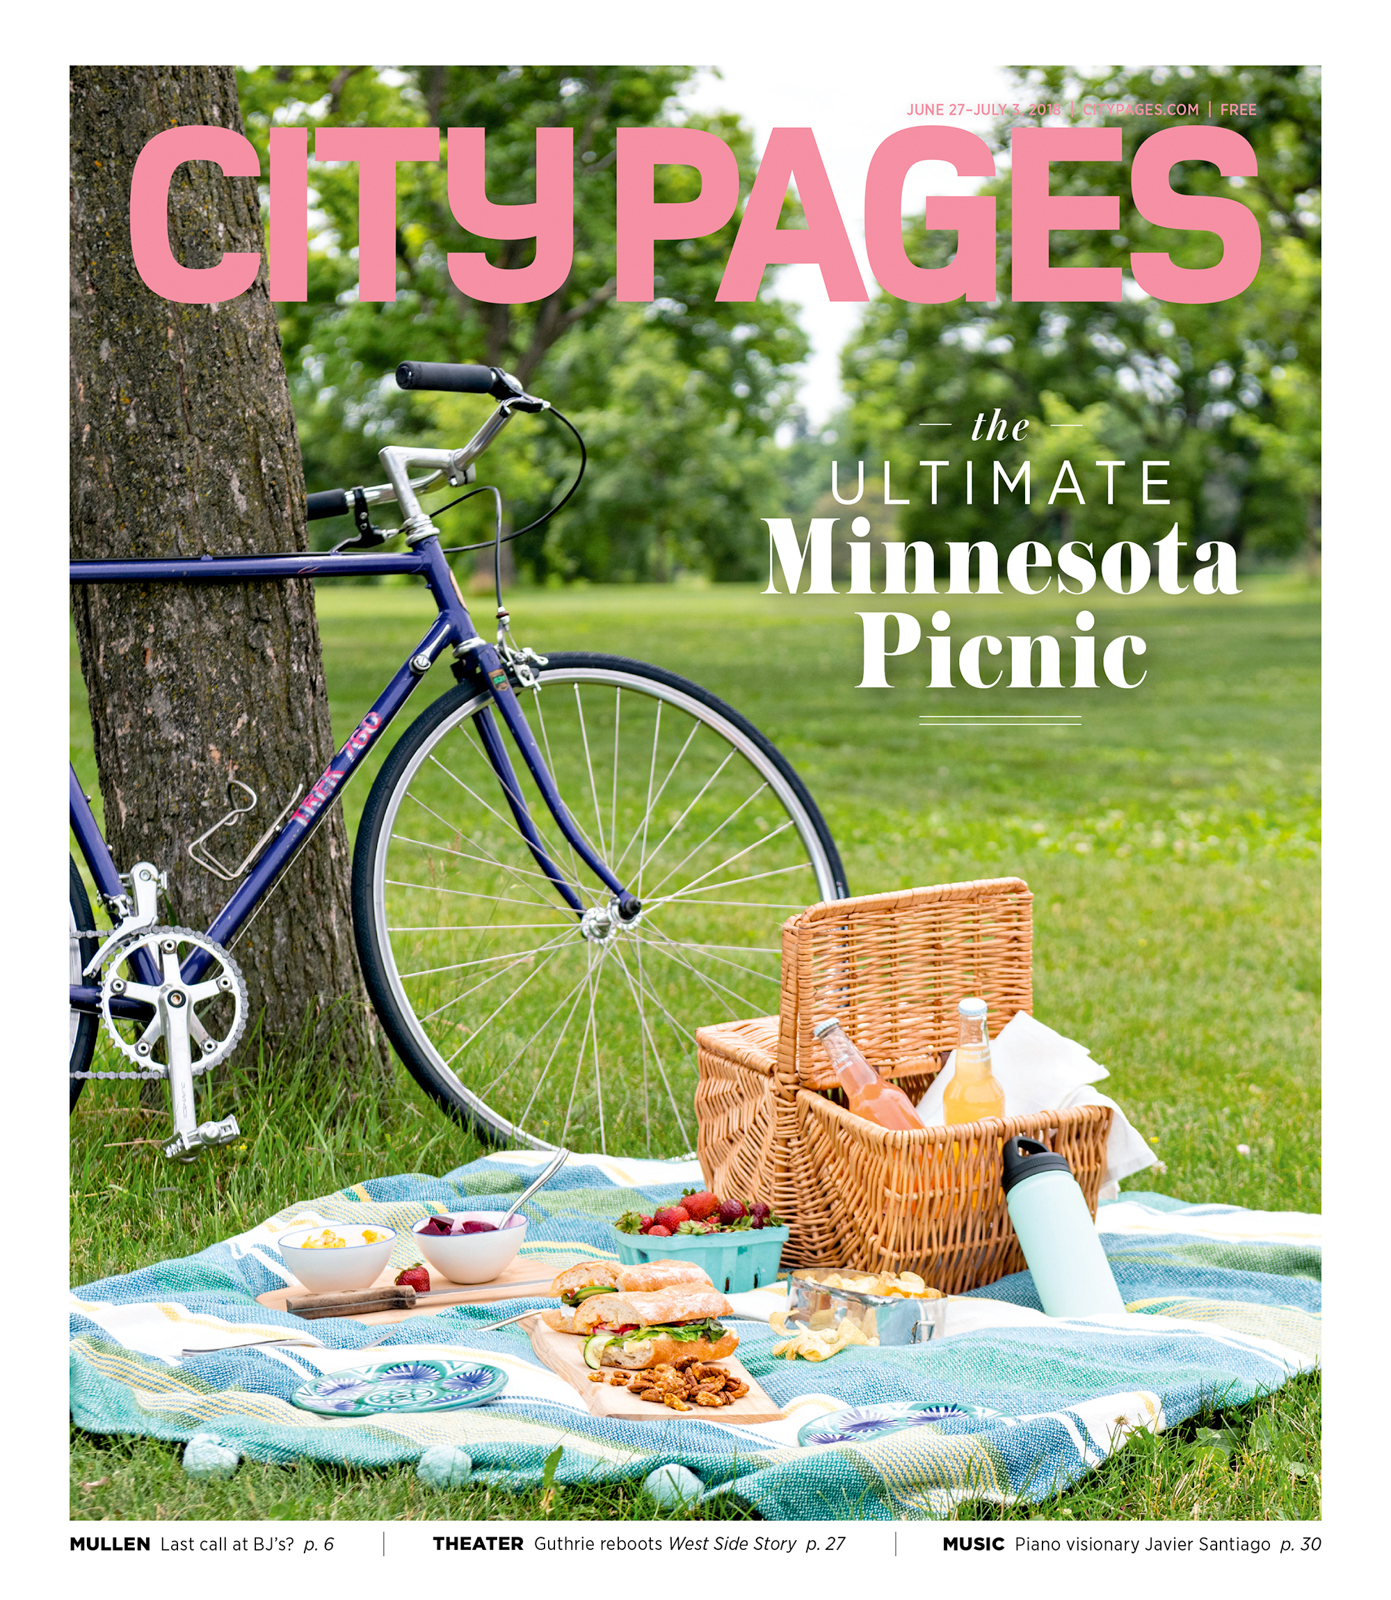 City Pages - Summer 2018 Cover story